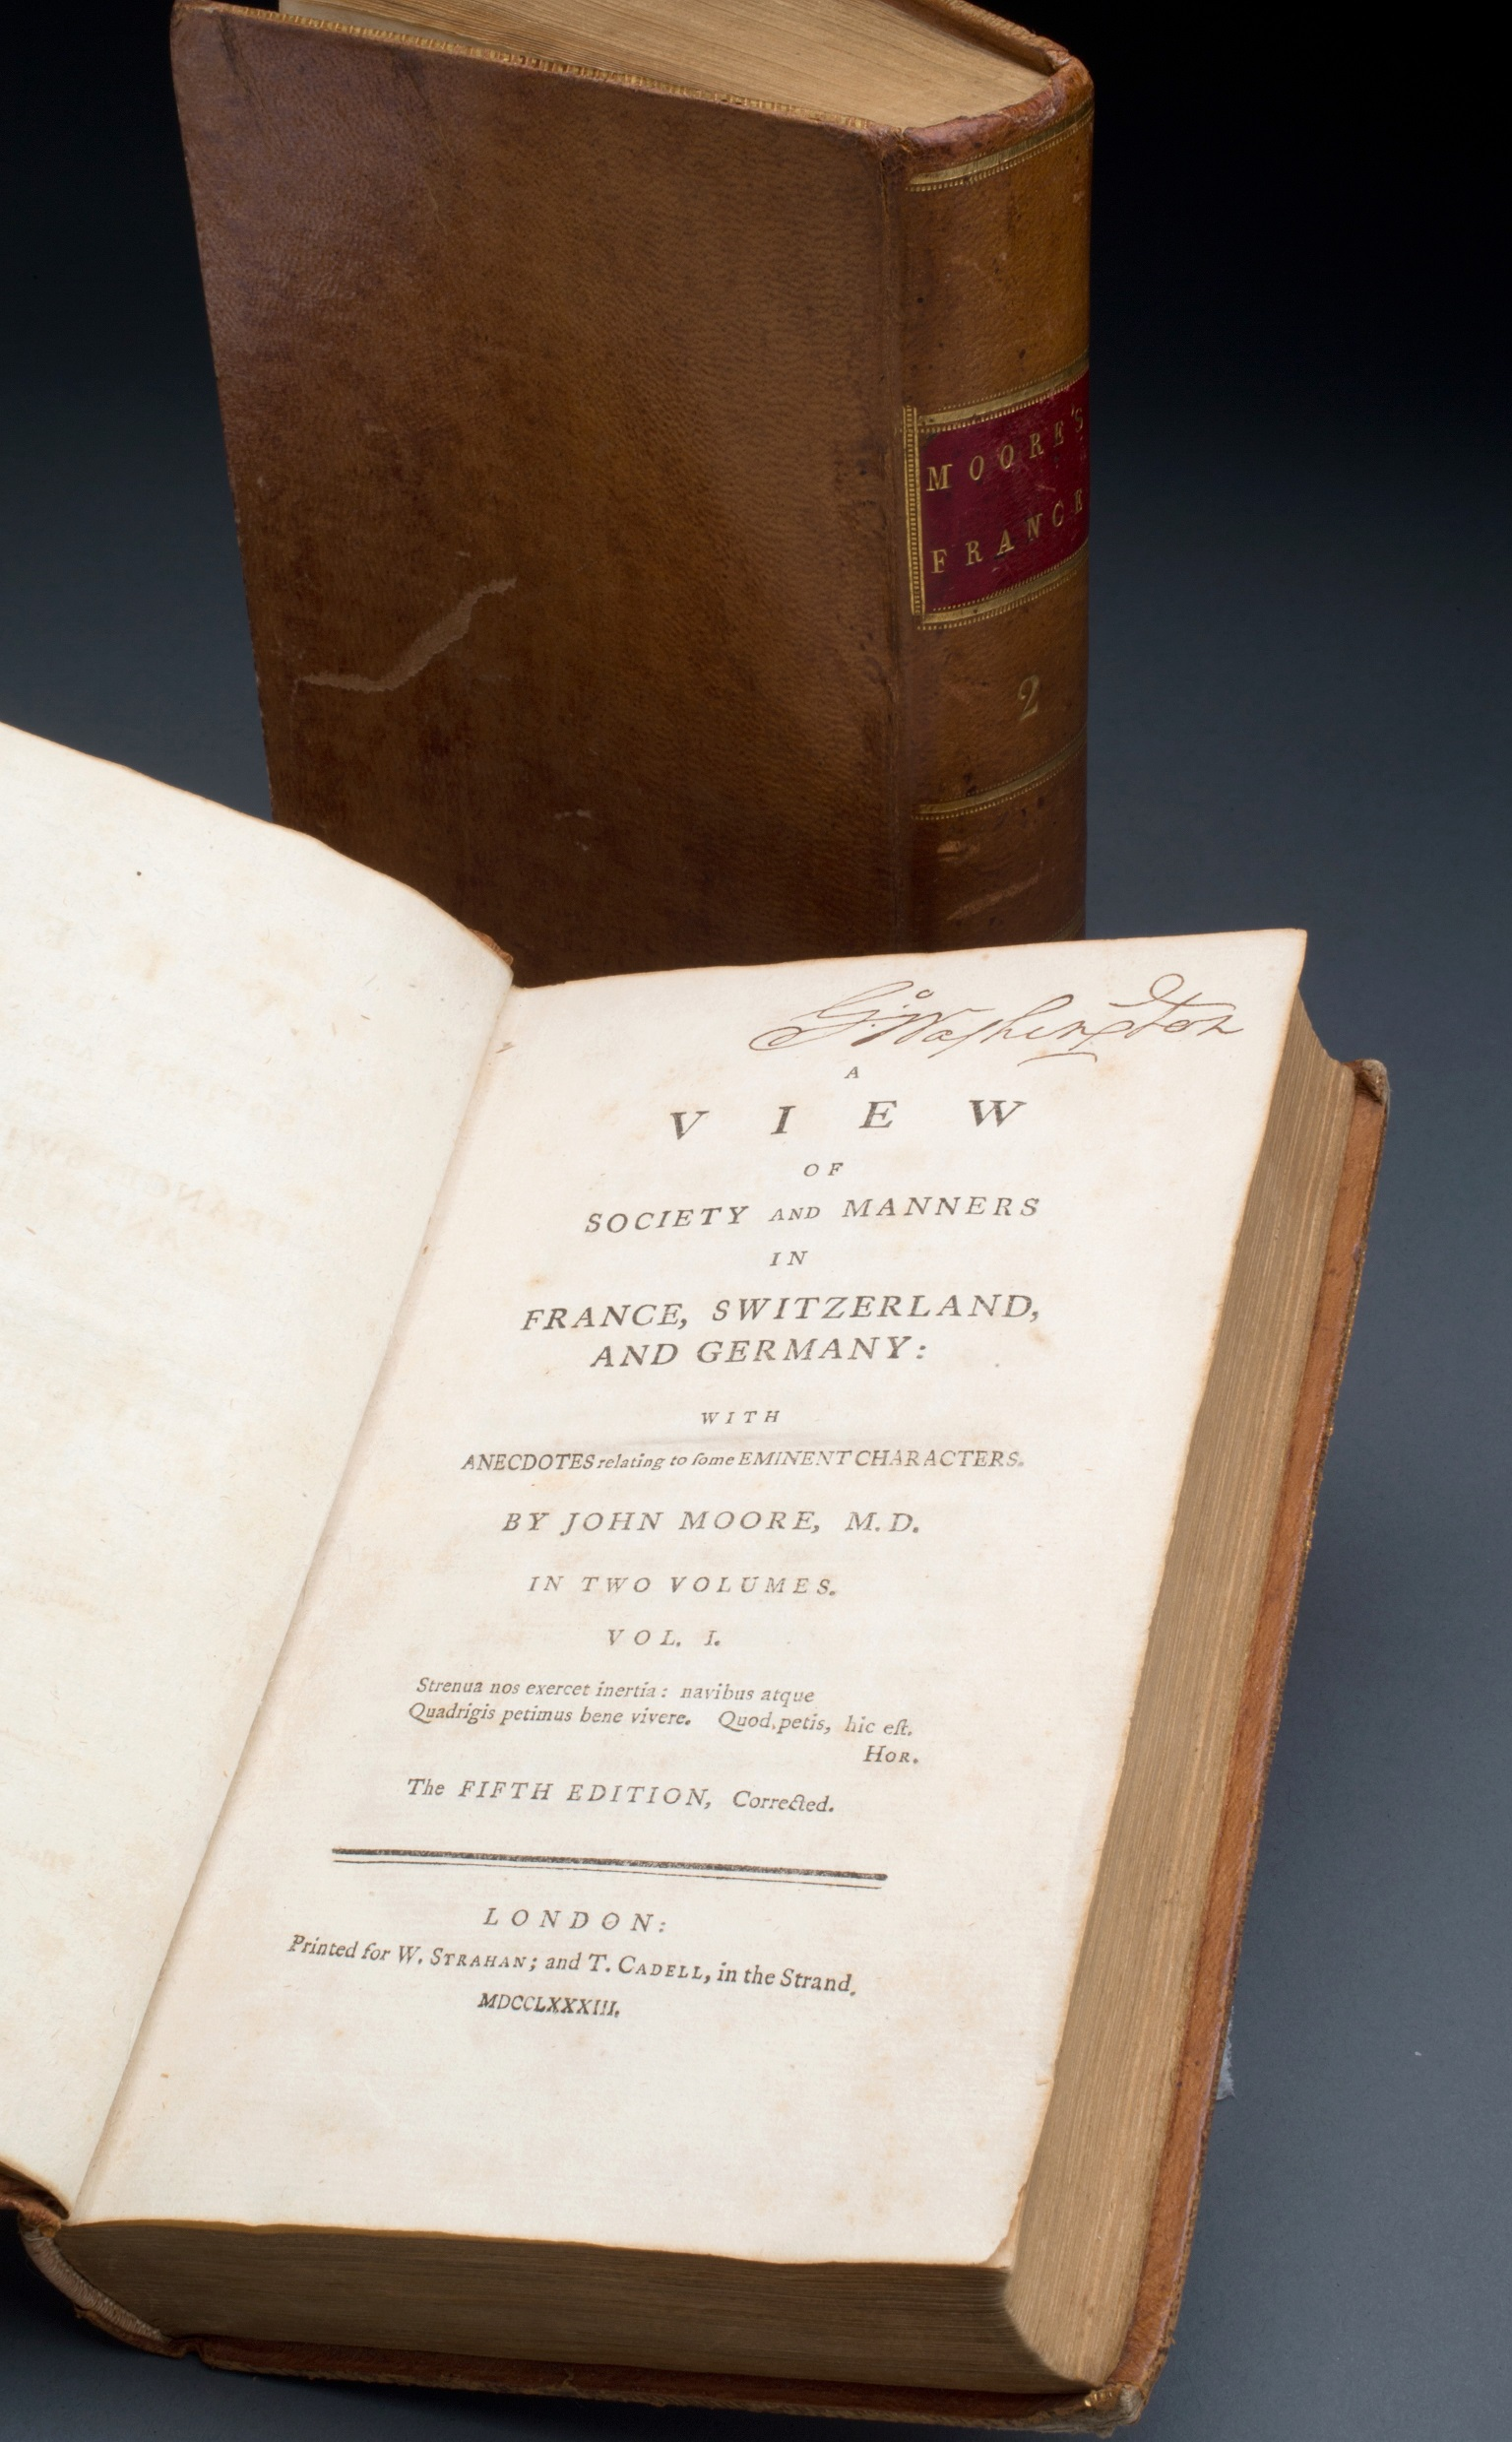 George Washington's copy of A View of Society and Manners in France, Switzerland, and Germany, 1783, by John Moore, MVLA.